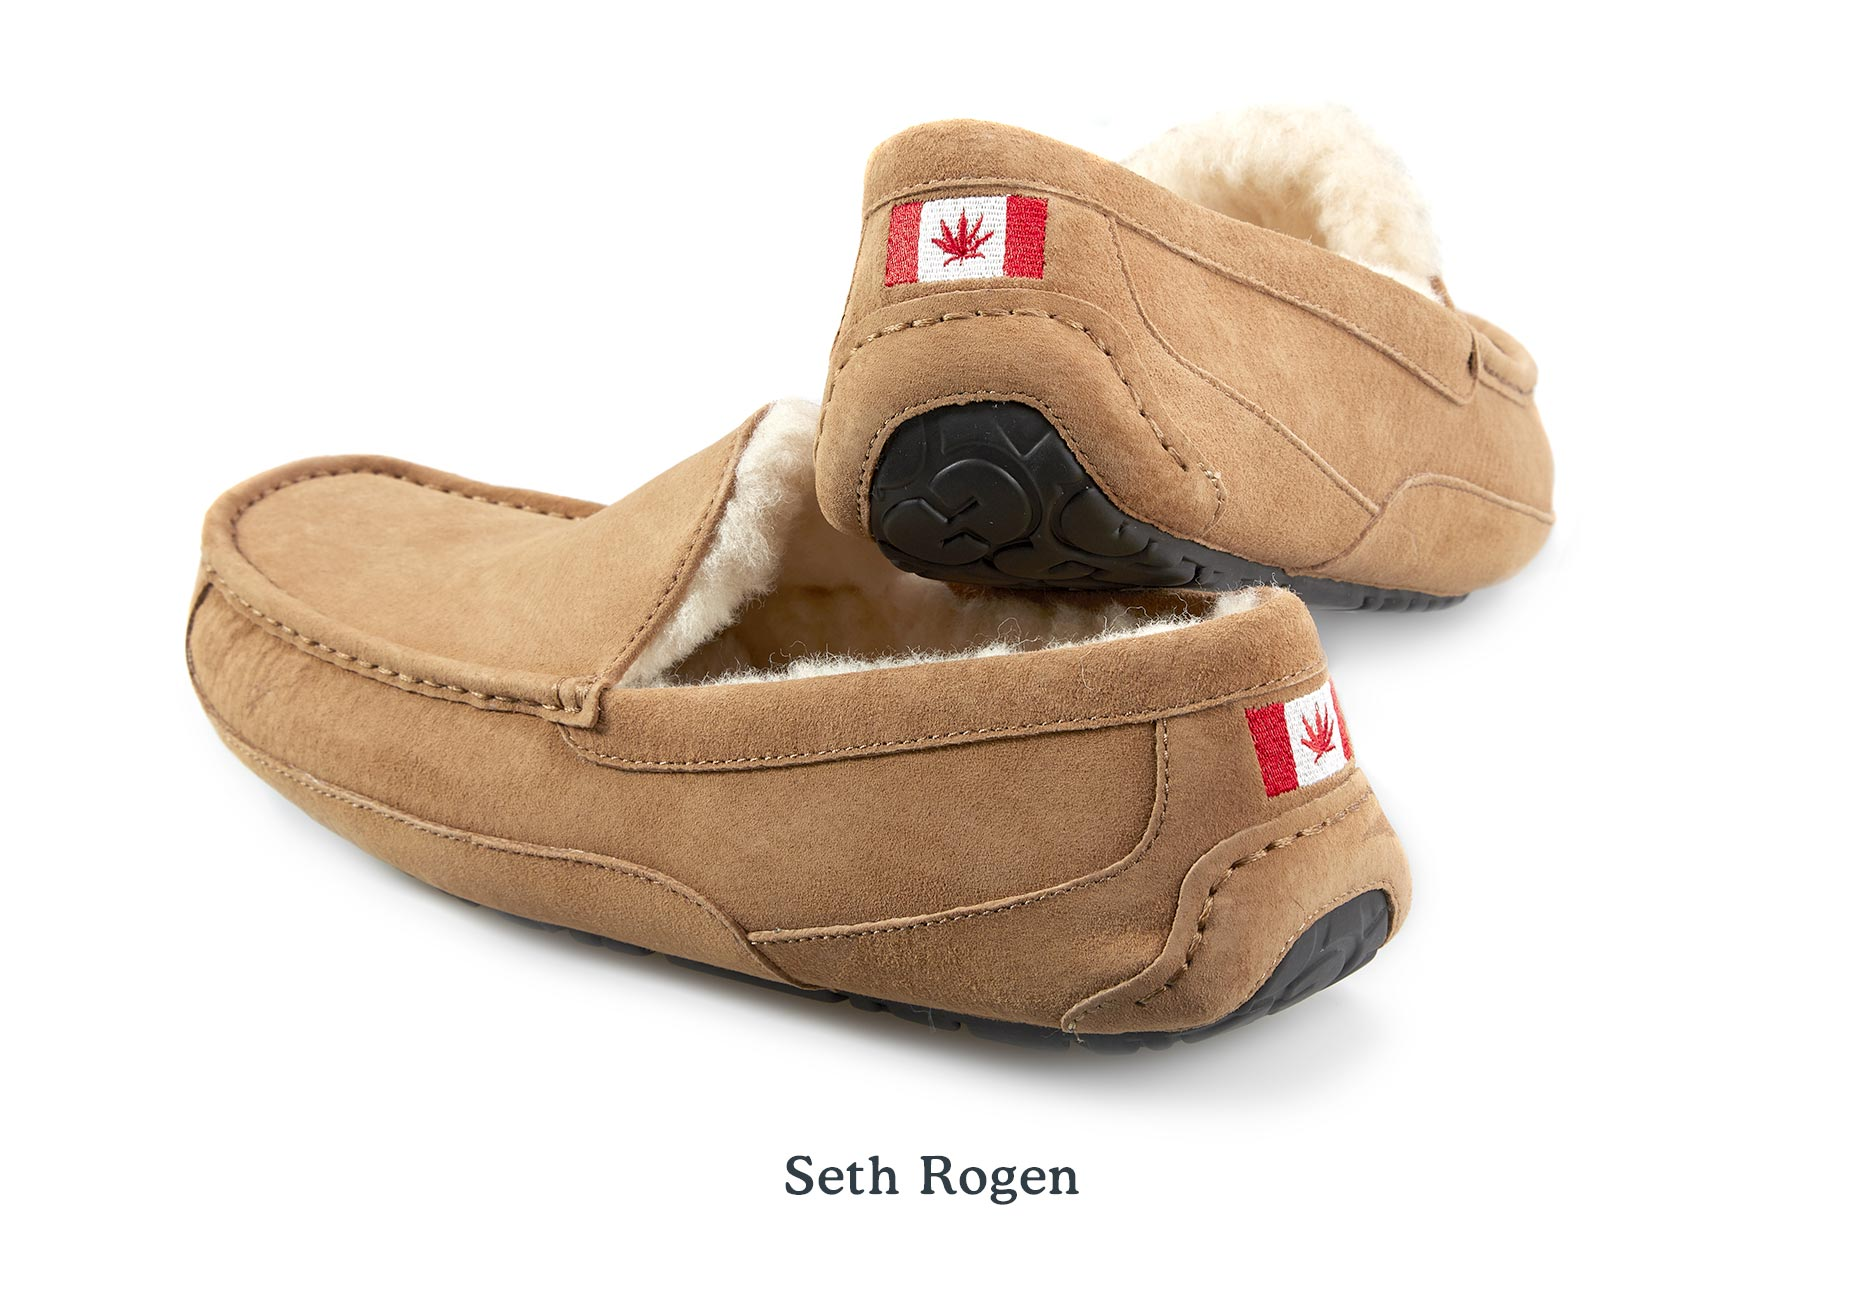 A pair of UGG Slippers for Seth Rogen with embroidery of a Canadian flag on the heel